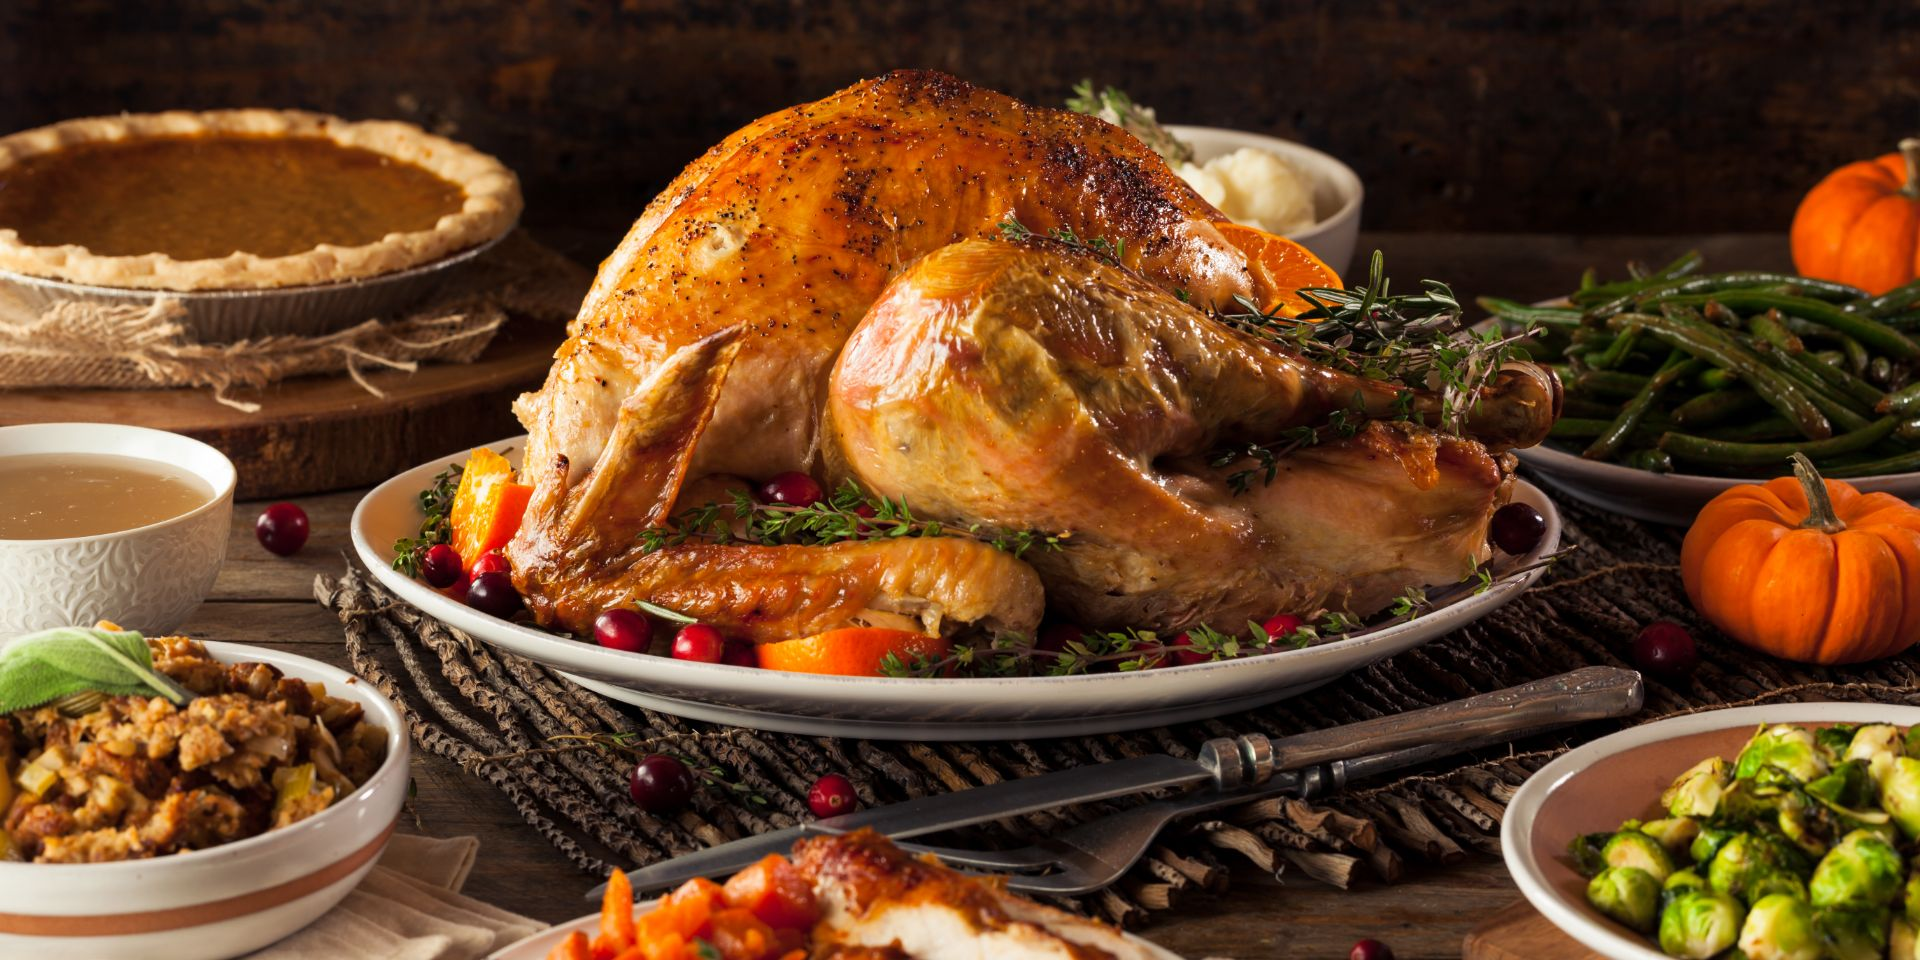 Thanksgiving meal with turkey and sides